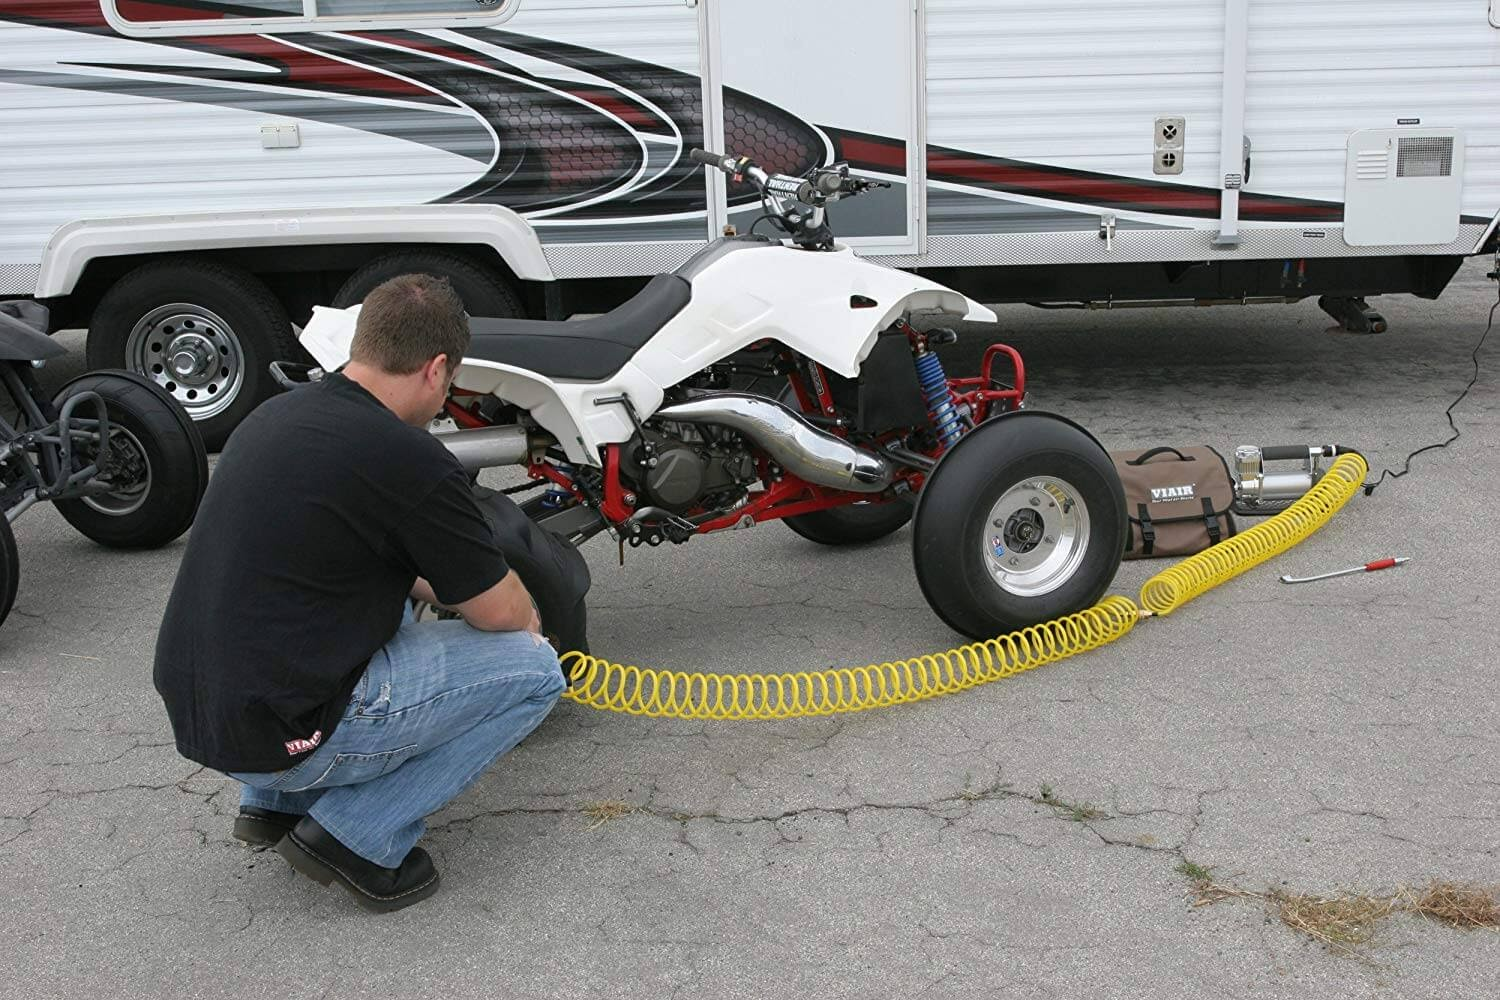 Person in front of an RV putting air into the tires of a white ATV